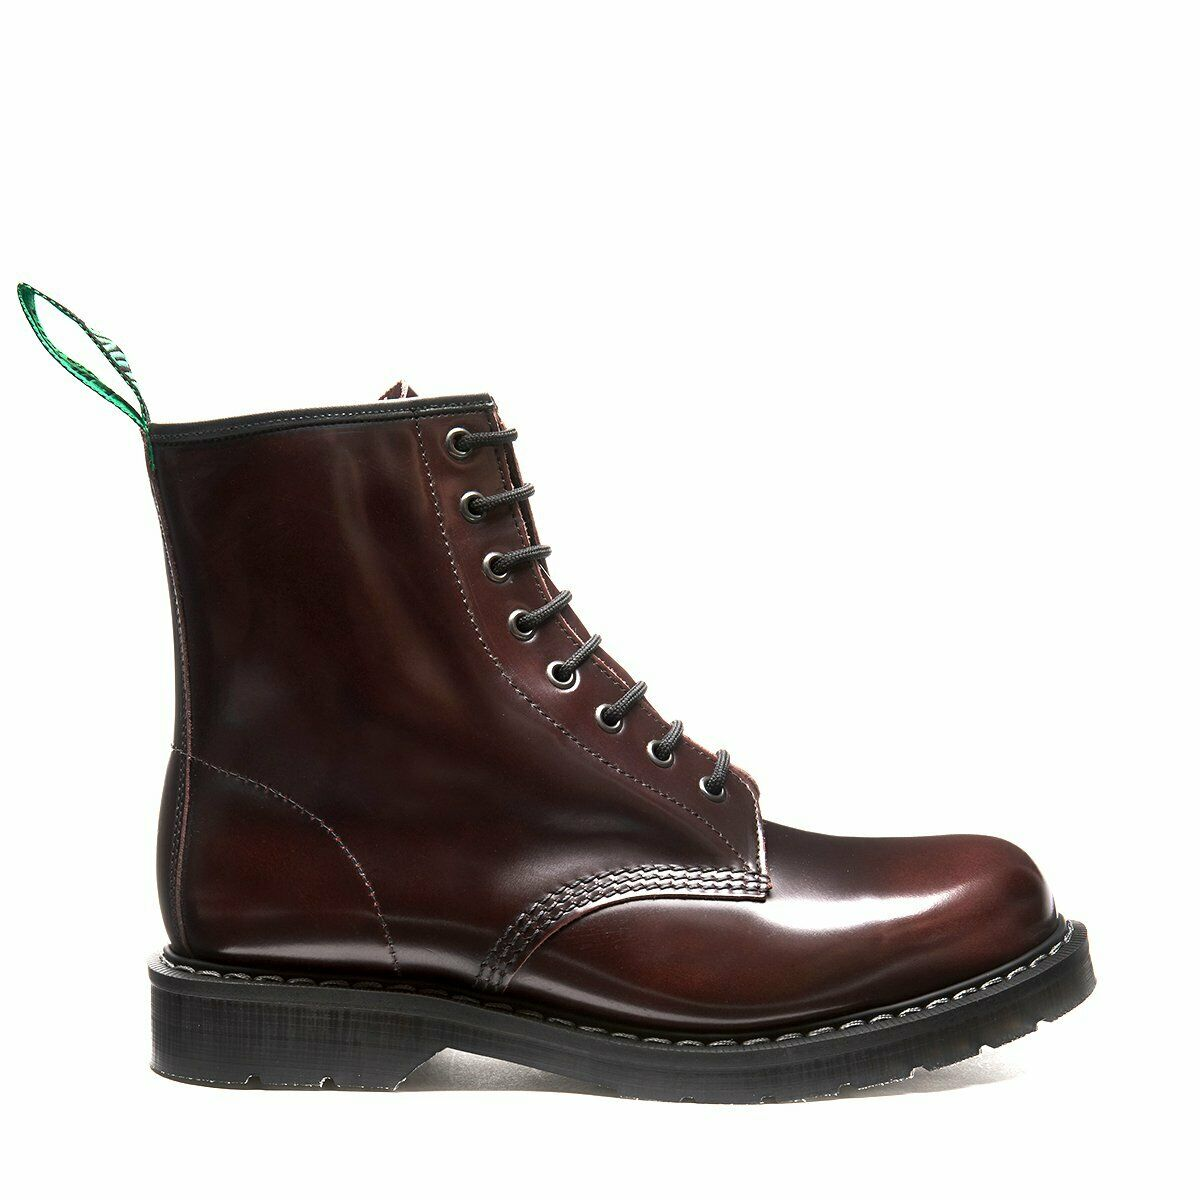 Solovair Burgundy Rub Off 8 Eyelet Boot Made In England